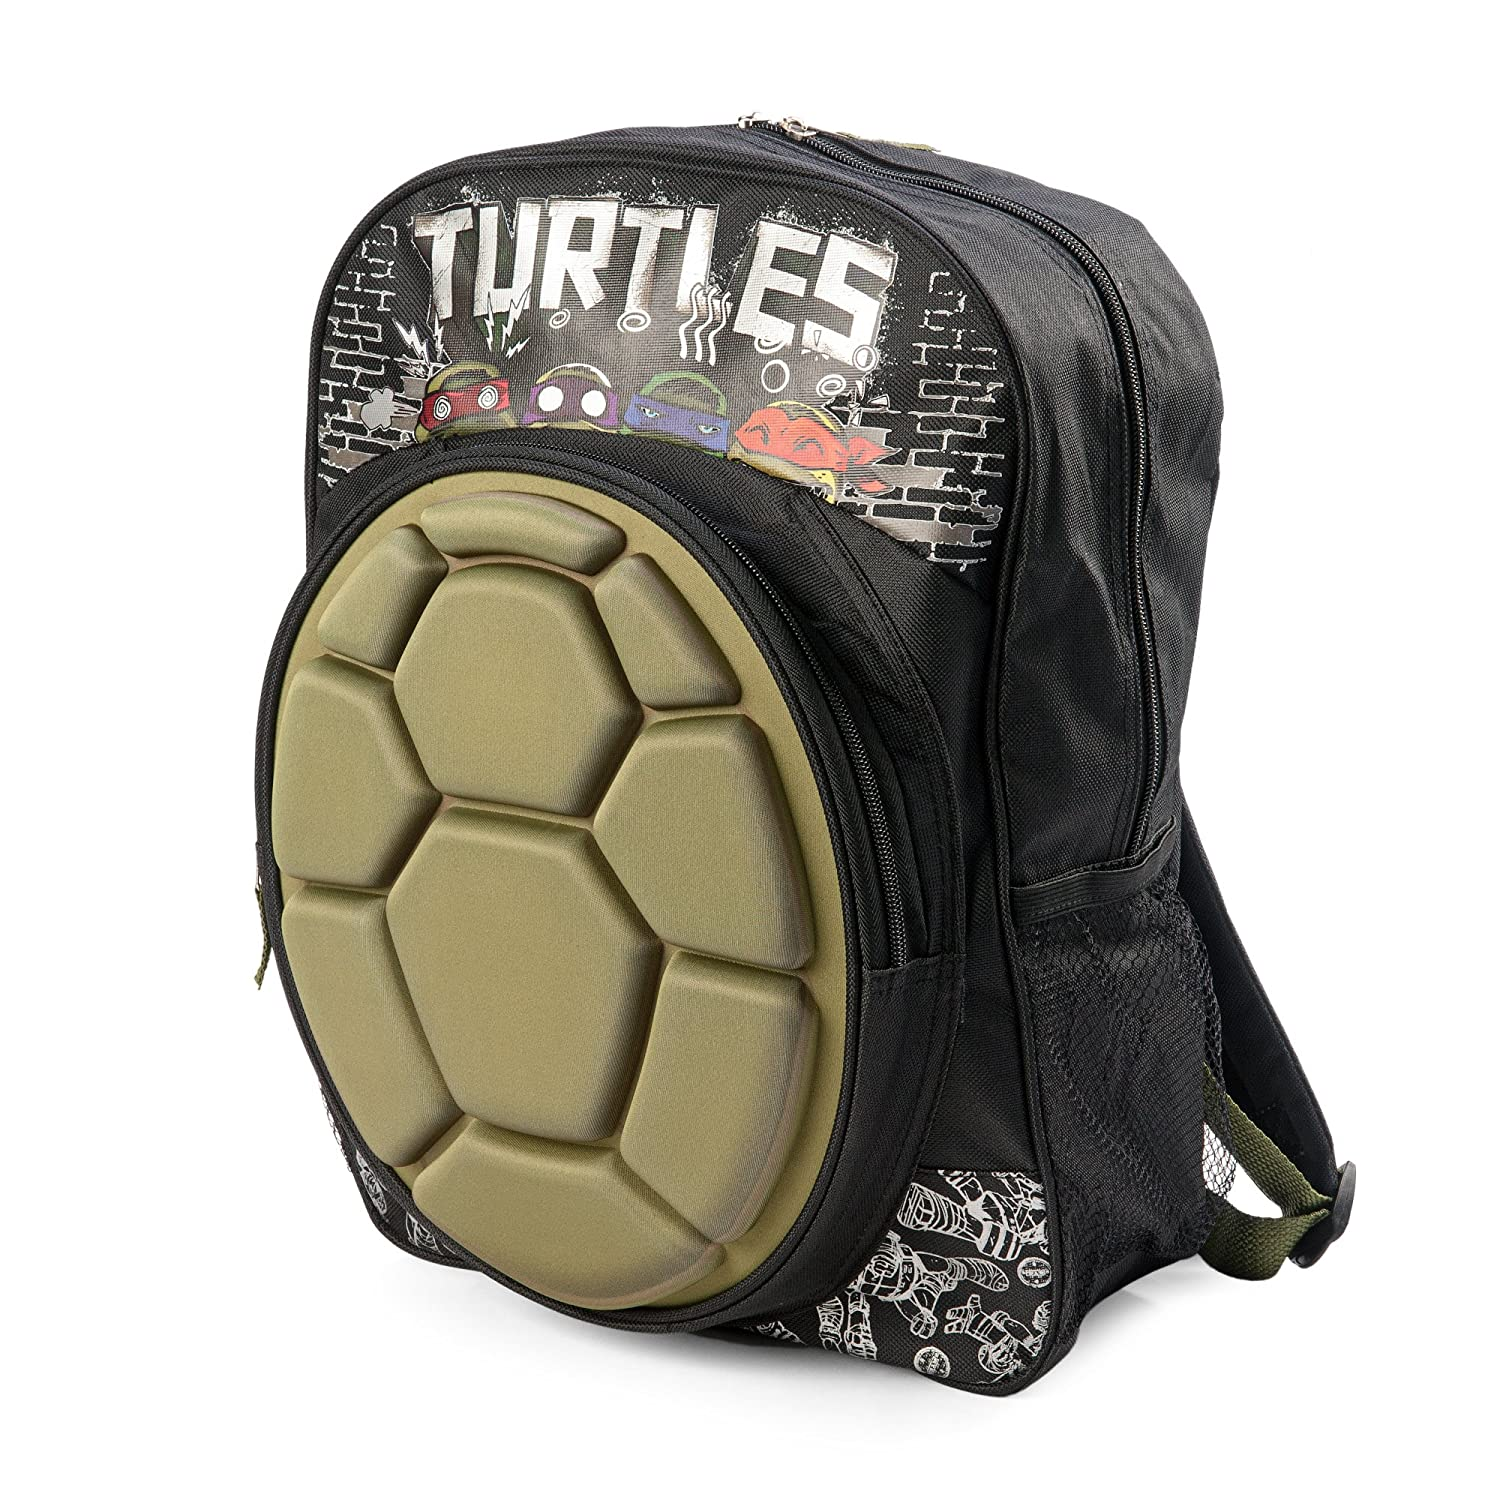 2015 New Ninja Turtles Shell 16 Inches Backpack(2688)